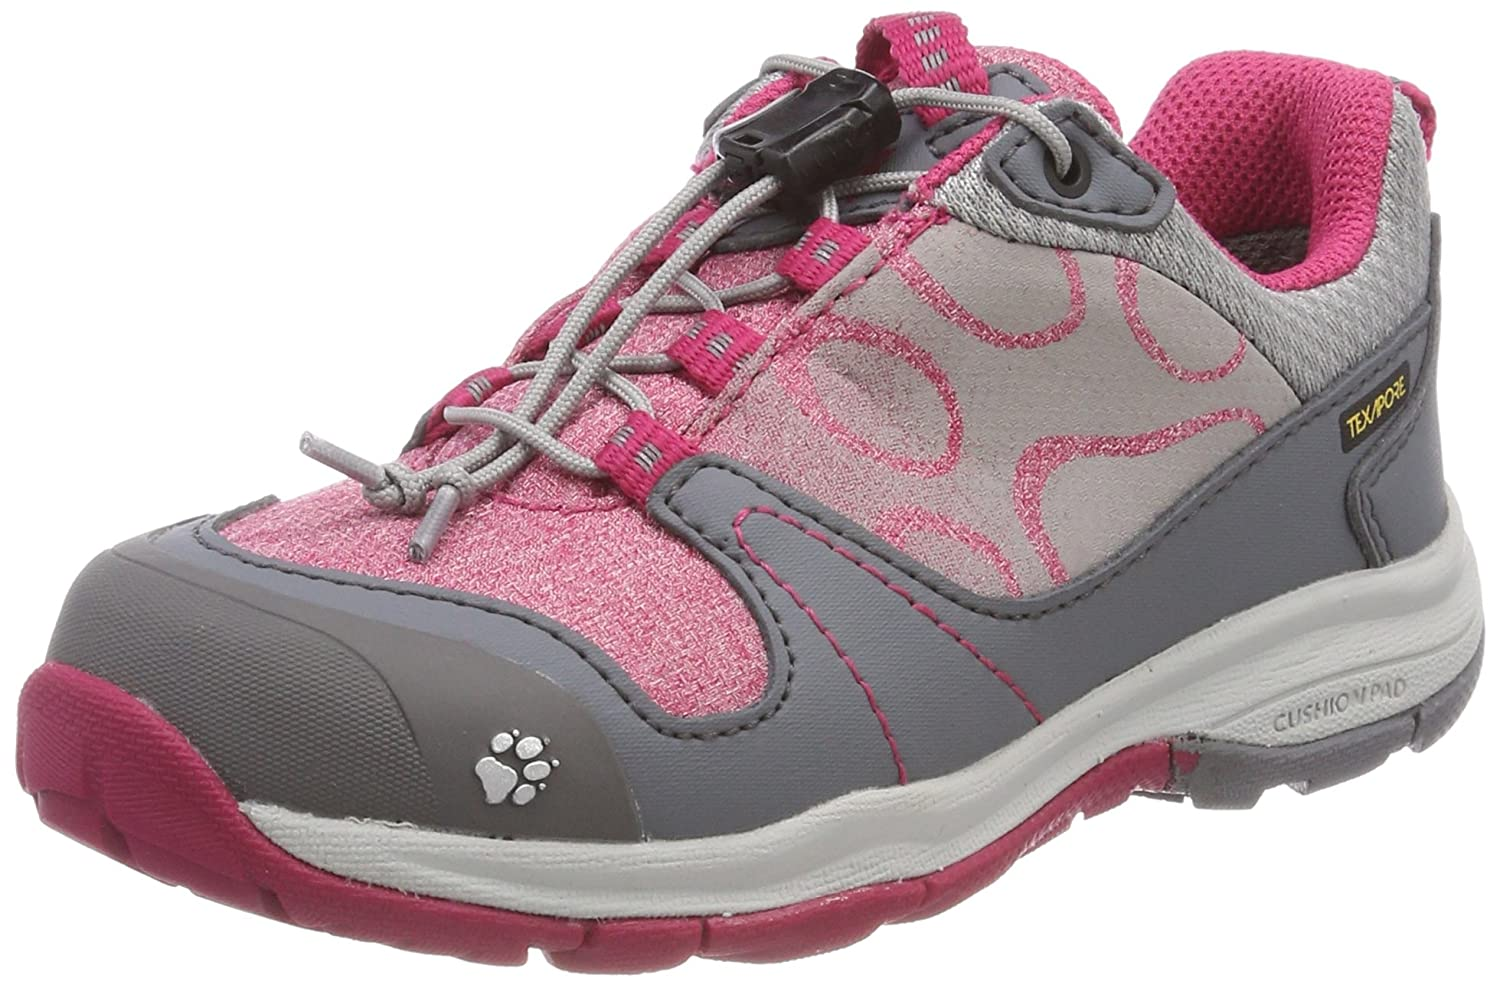 Jack Wolfskin Kids' Grivla Texapore Low G Hiking Shoe